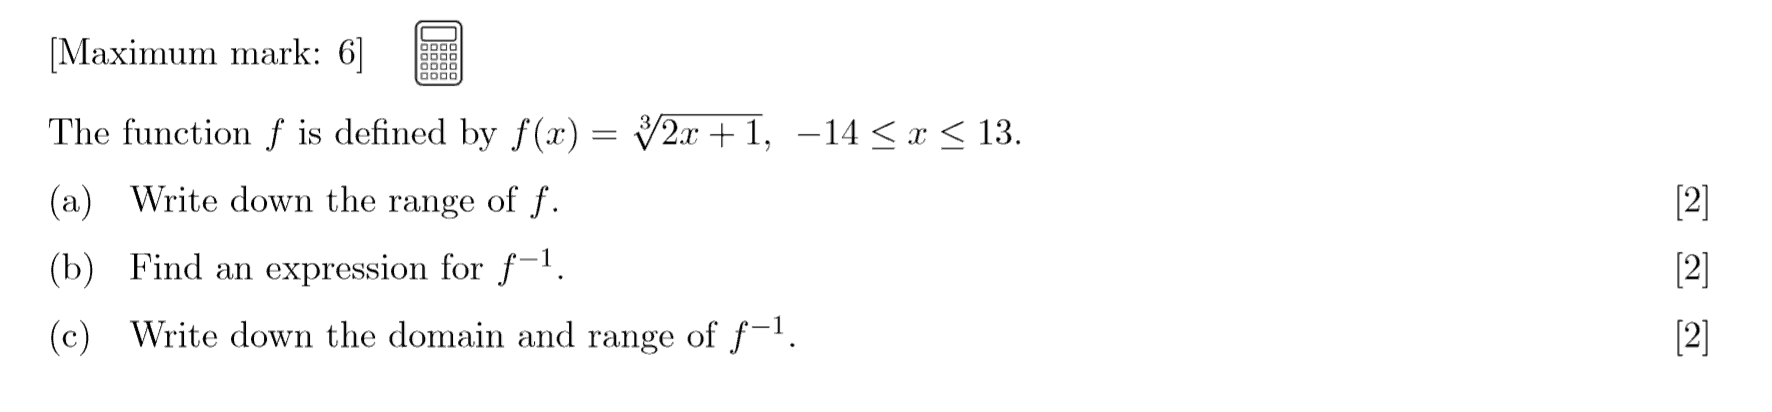 IB Maths HL Exam Question - Functions and Equations